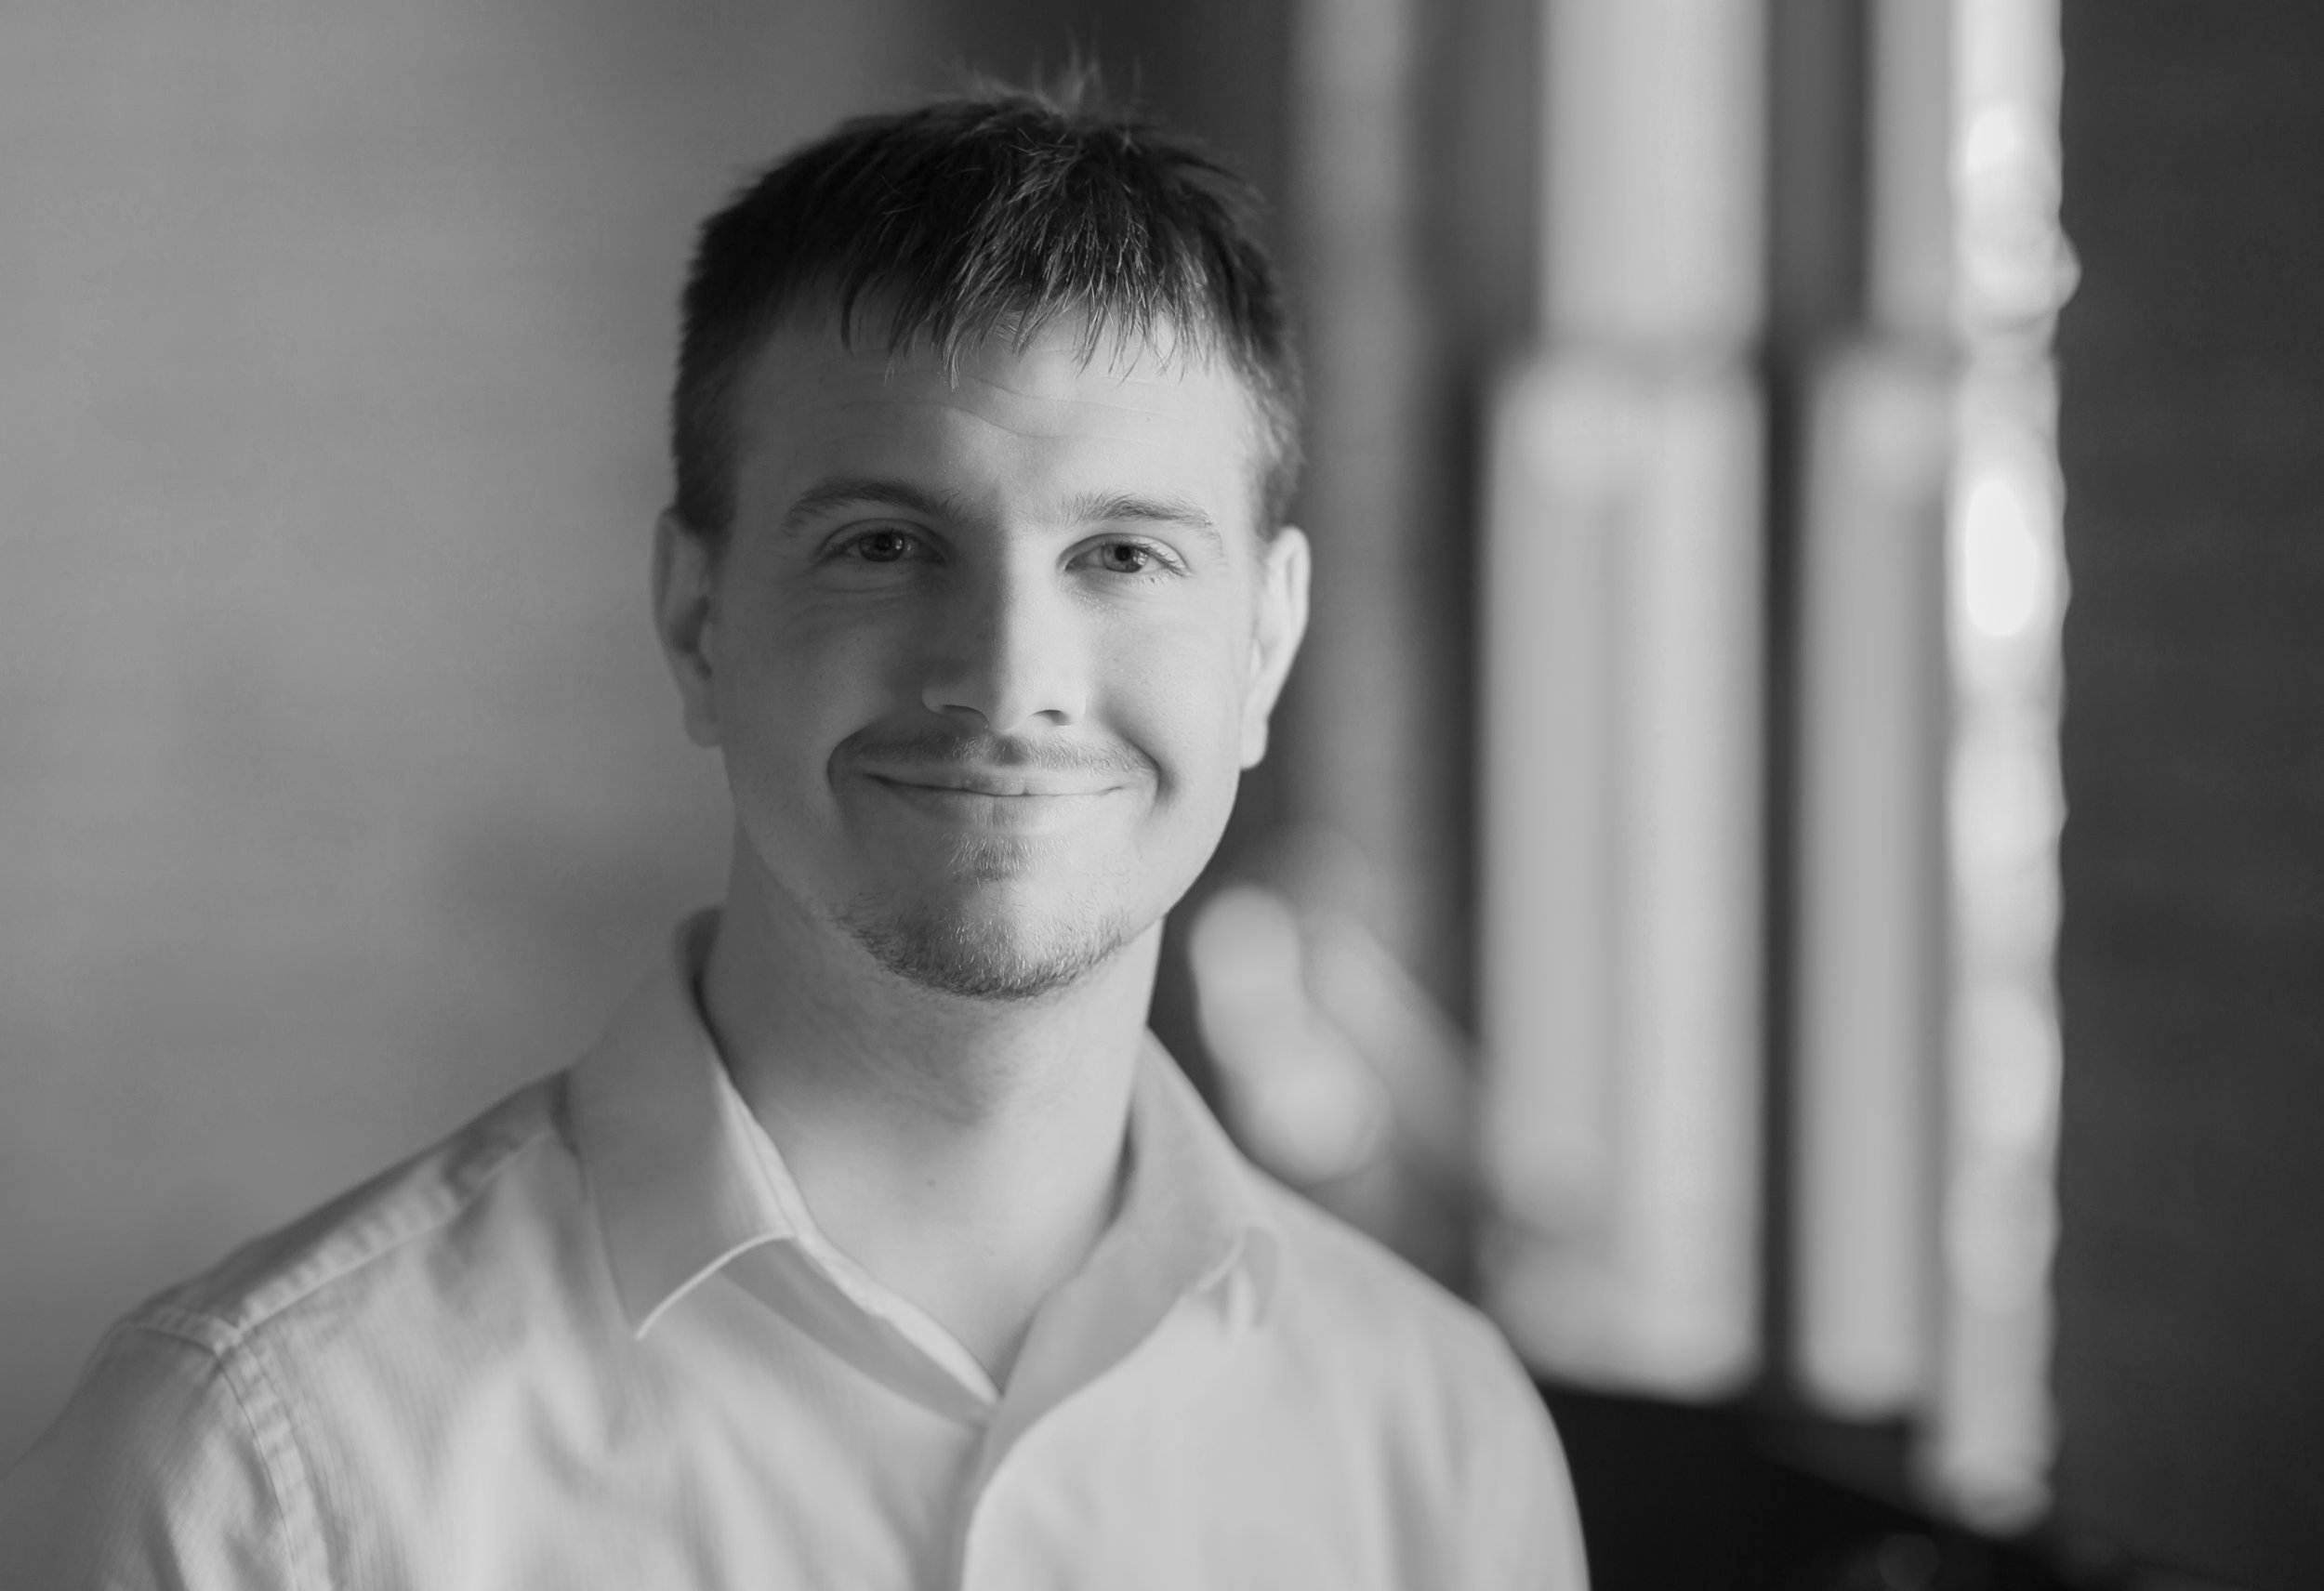 BRETT BENKA - Brett Benka graduated with a Master's Degree in Architecture from the University of Wisconsin-Milwaukee in 2014. He worked at Continuum Architects and Planners before coming to Dan Beyer Architects in March of 2016. His rigorous attention to detail allows him to assist the design process and create clearly organized contract documents.As an experienced technician of Revit, SketchUp, V-Ray and Adobe Photoshop, Brett also creates beautiful renderings of architectural spaces that allow clients to better understand the design and experience of the space.What is your favorite TV show and why?Game of Thrones because the characters are great and their destinies are totally unpredictable. Plus I just love castles, magic, and other nerdy things.Who was the worst roommate you've ever had?Probably this guy named Brett Benka. He never wanted to do the dishes and would often leave his pants on the floor.What is the strangest thing about you?That's a real tough one. There are so many things to choose from. It would have to be my obsession with French Bulldogs. They are bizarre animals and I can't help but laugh when I see one.